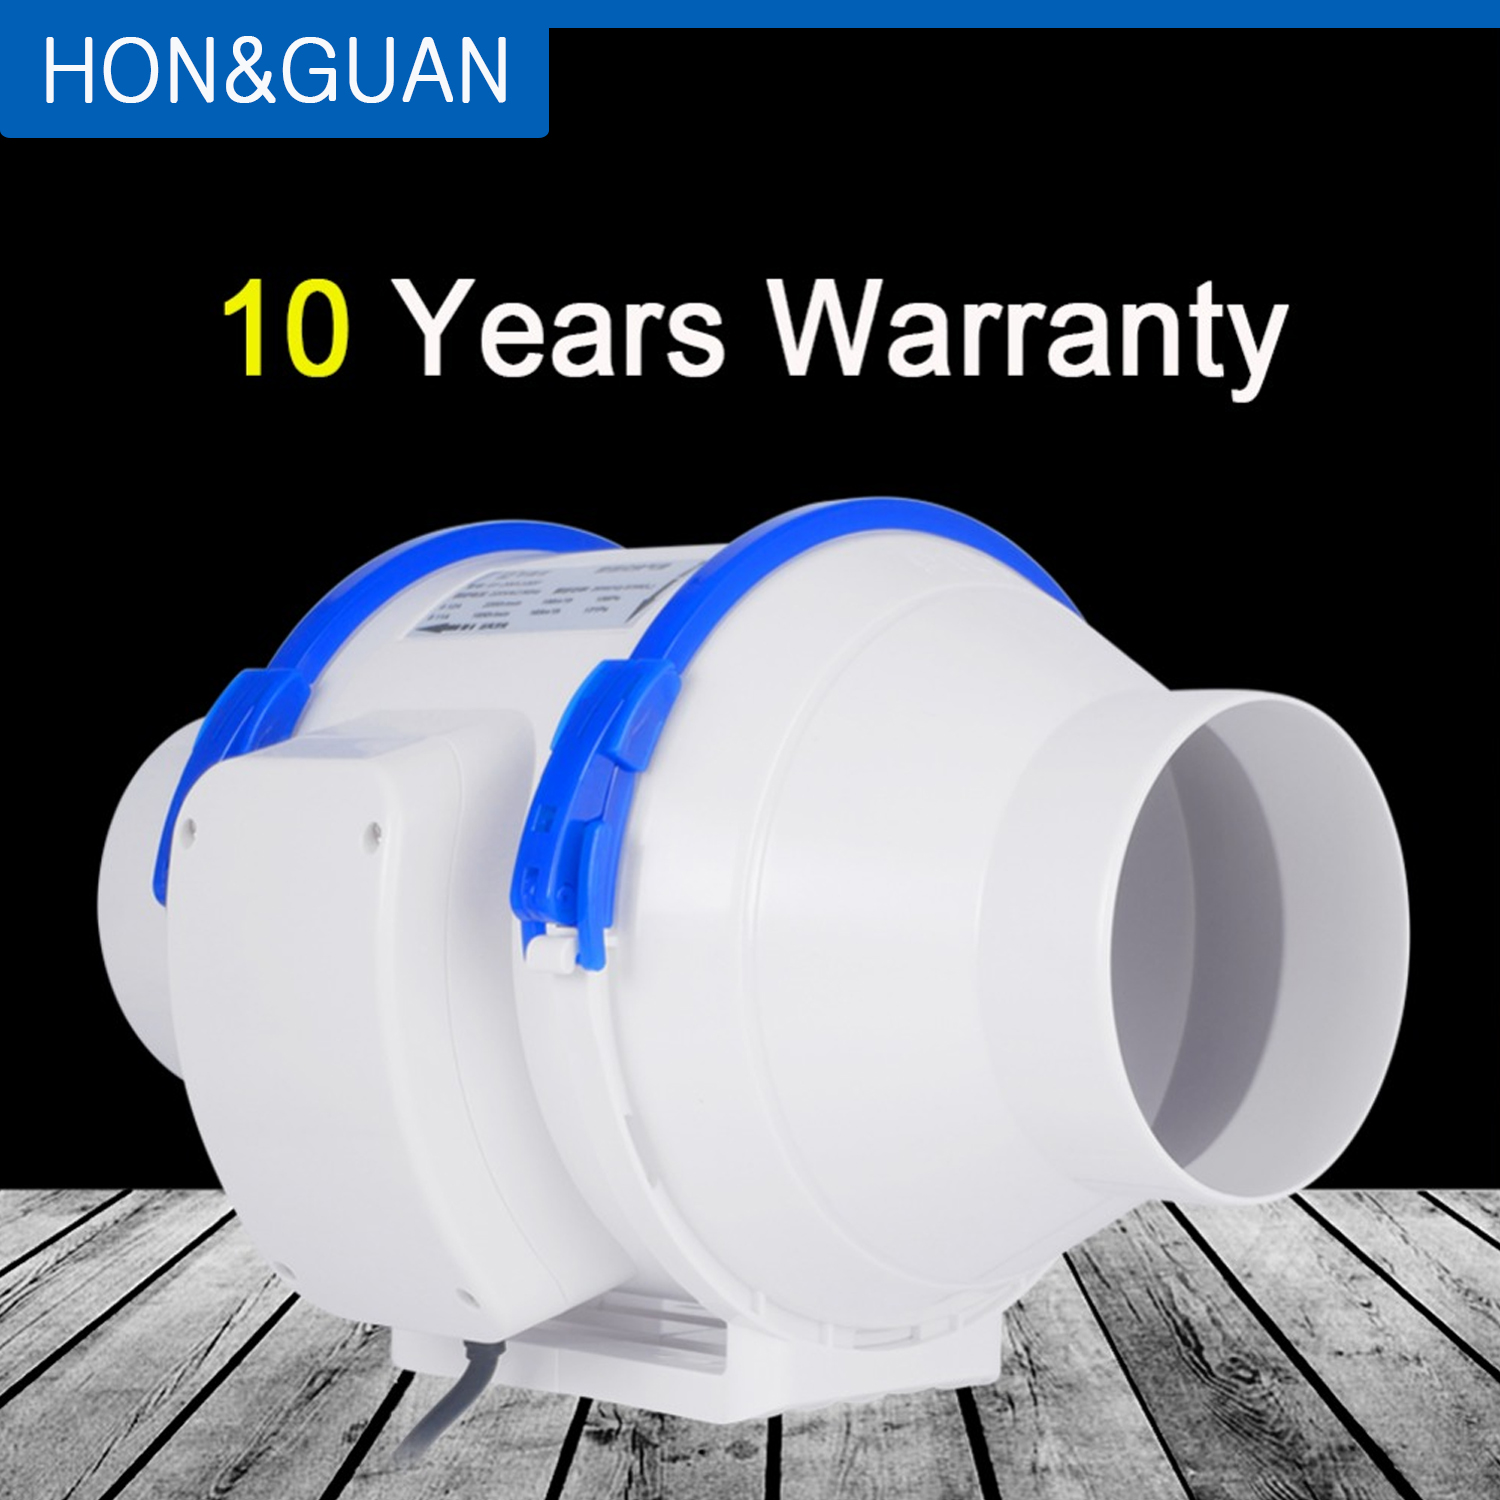 4 8 silent inline duct fan 220v exhaust ventilation outlet air extractor for toilet bathroom kitchen hood ventilator